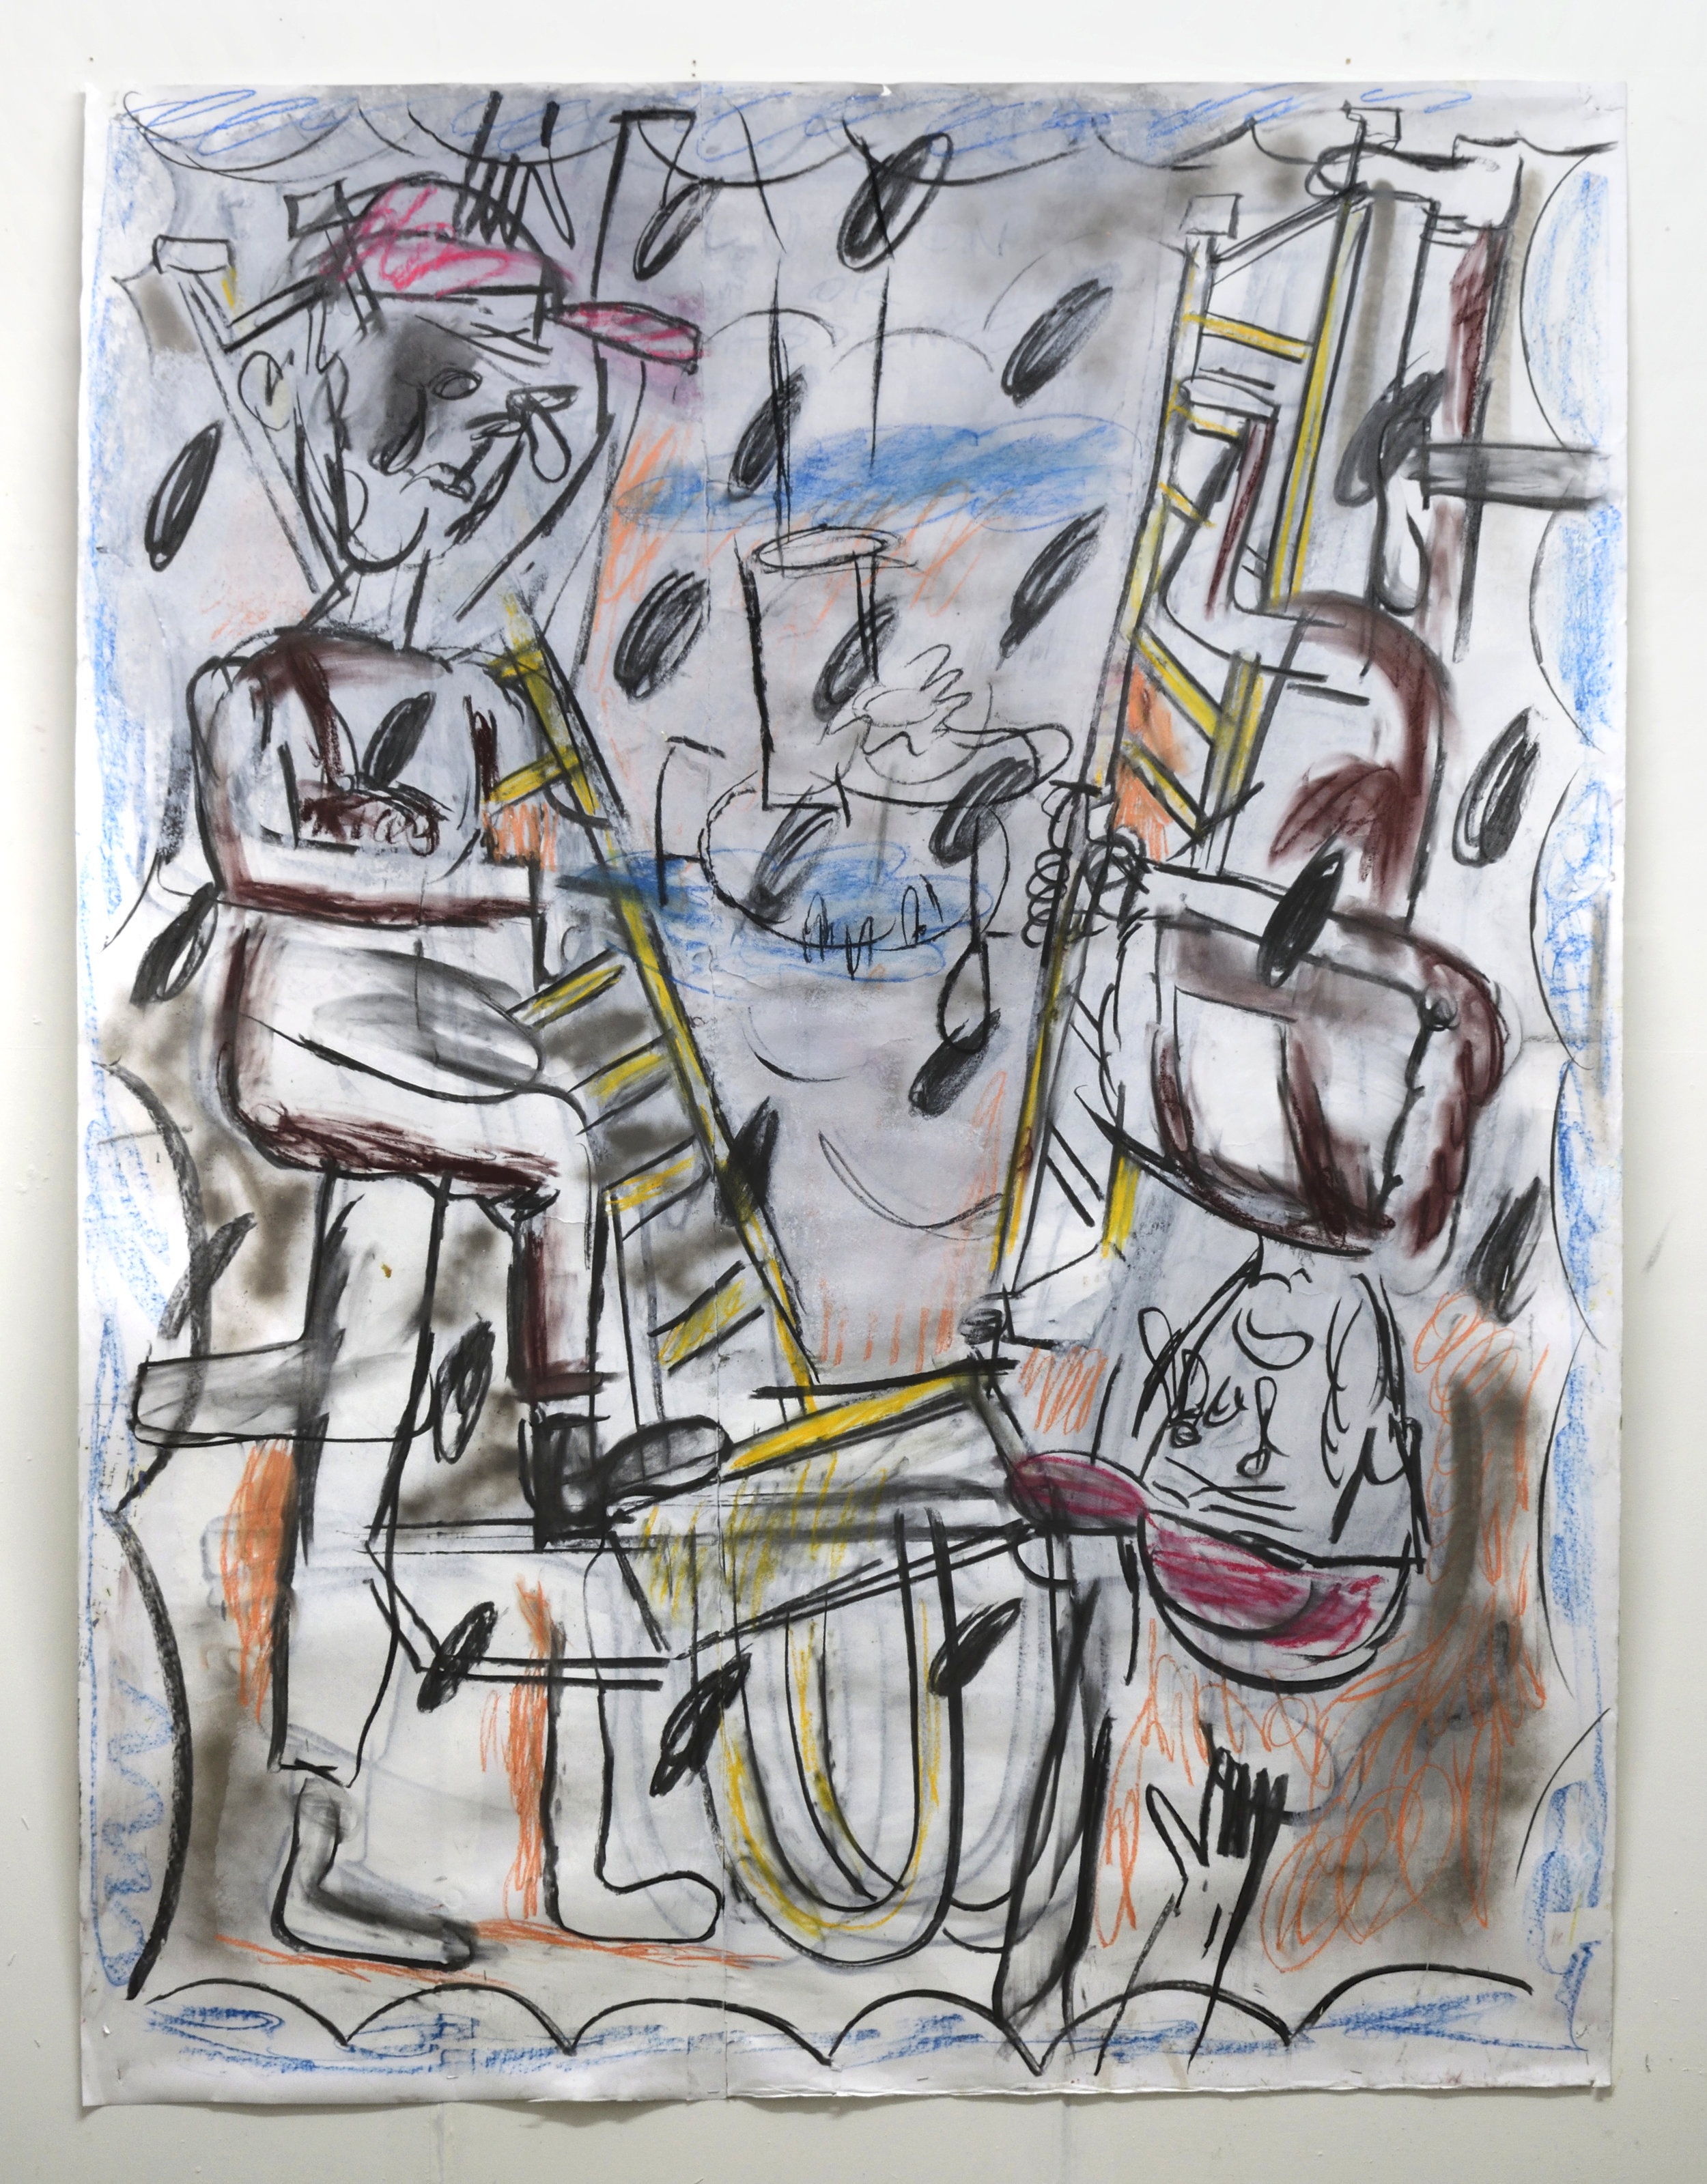 'The golden ladder of service' 2018   Charcoal and pastel on paper. 200 x 150 cm